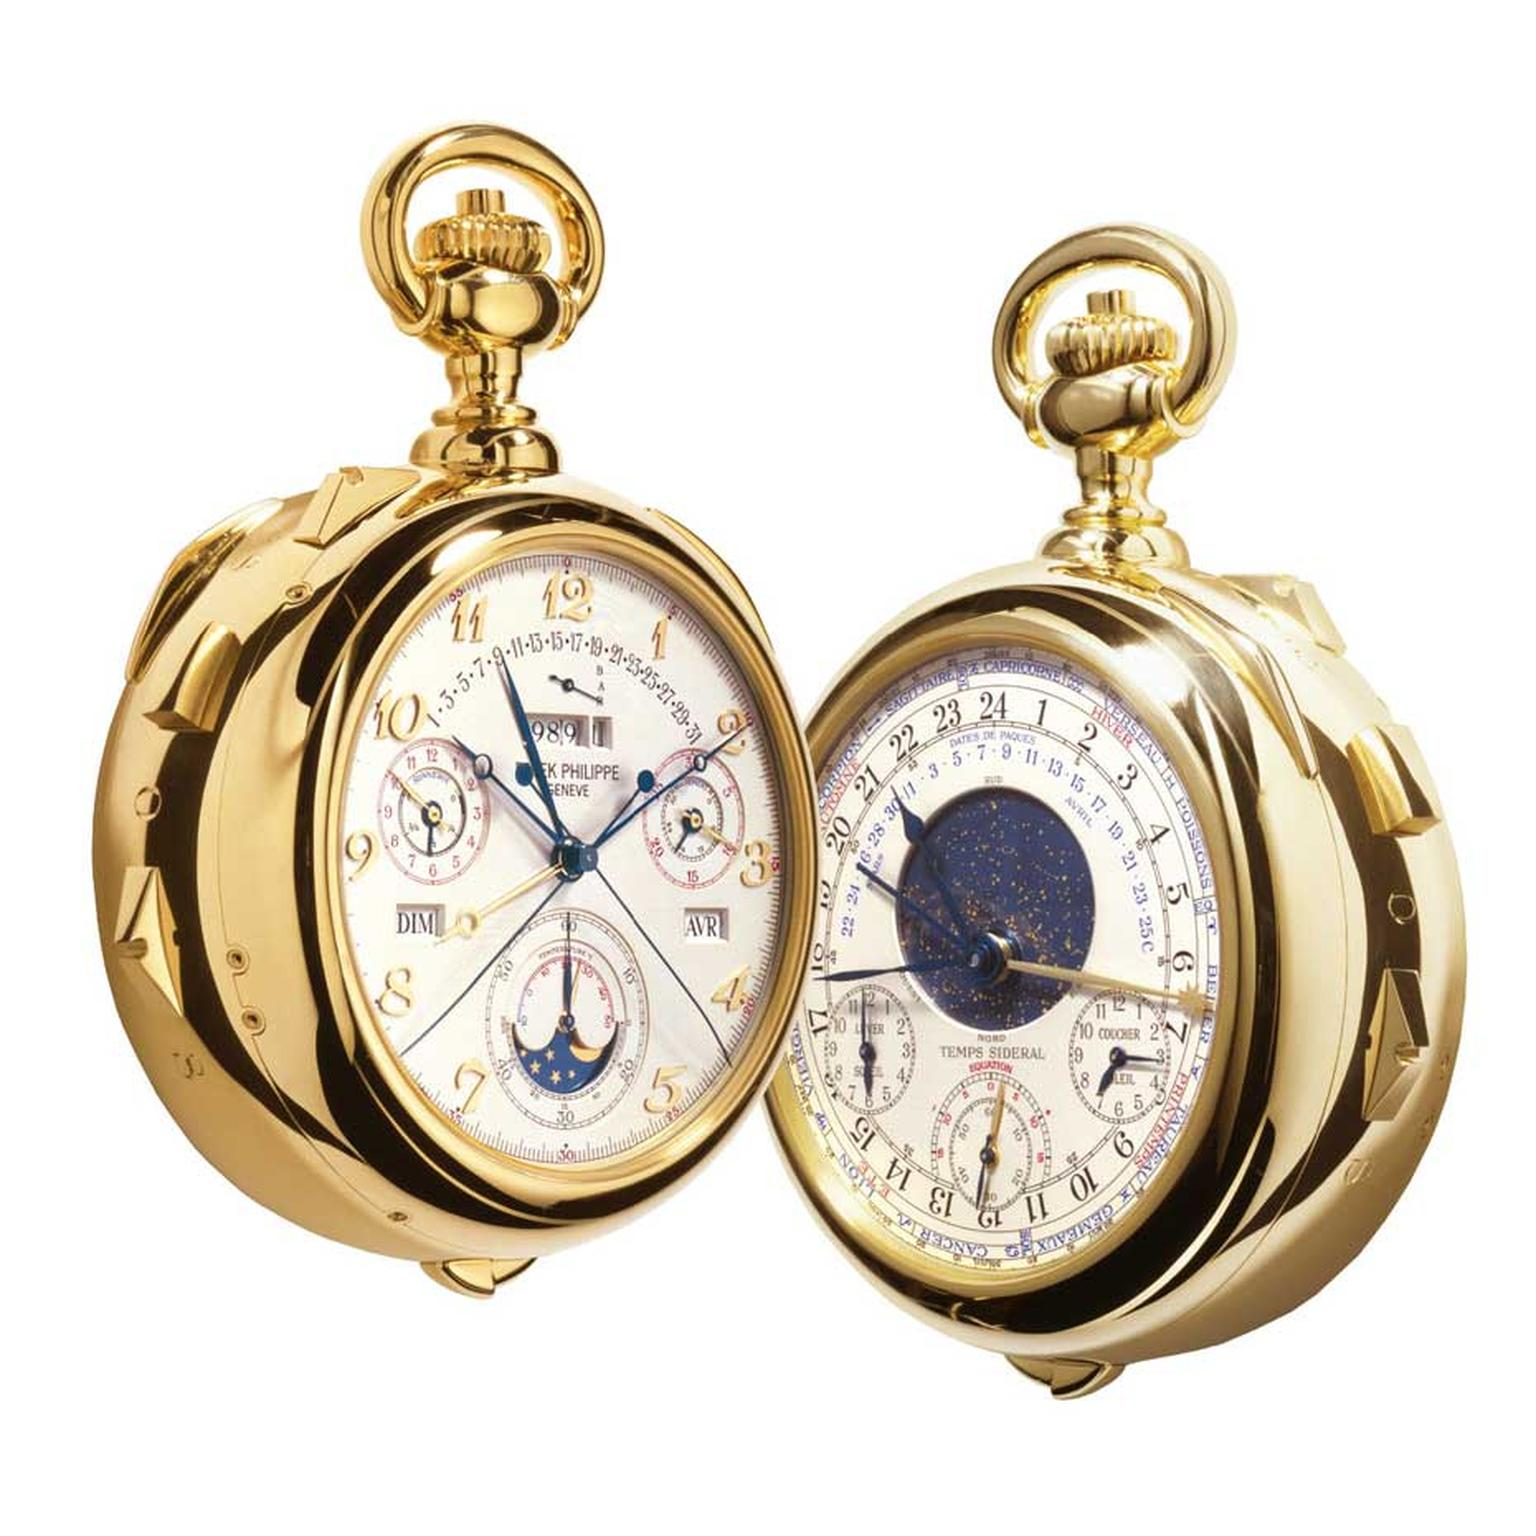 Calibre 89 by Patek Philippe was created to celebrate the brand's 150th anniversary in 1989. Packed with 33 complications, it is the world's most complicated pocket watch.